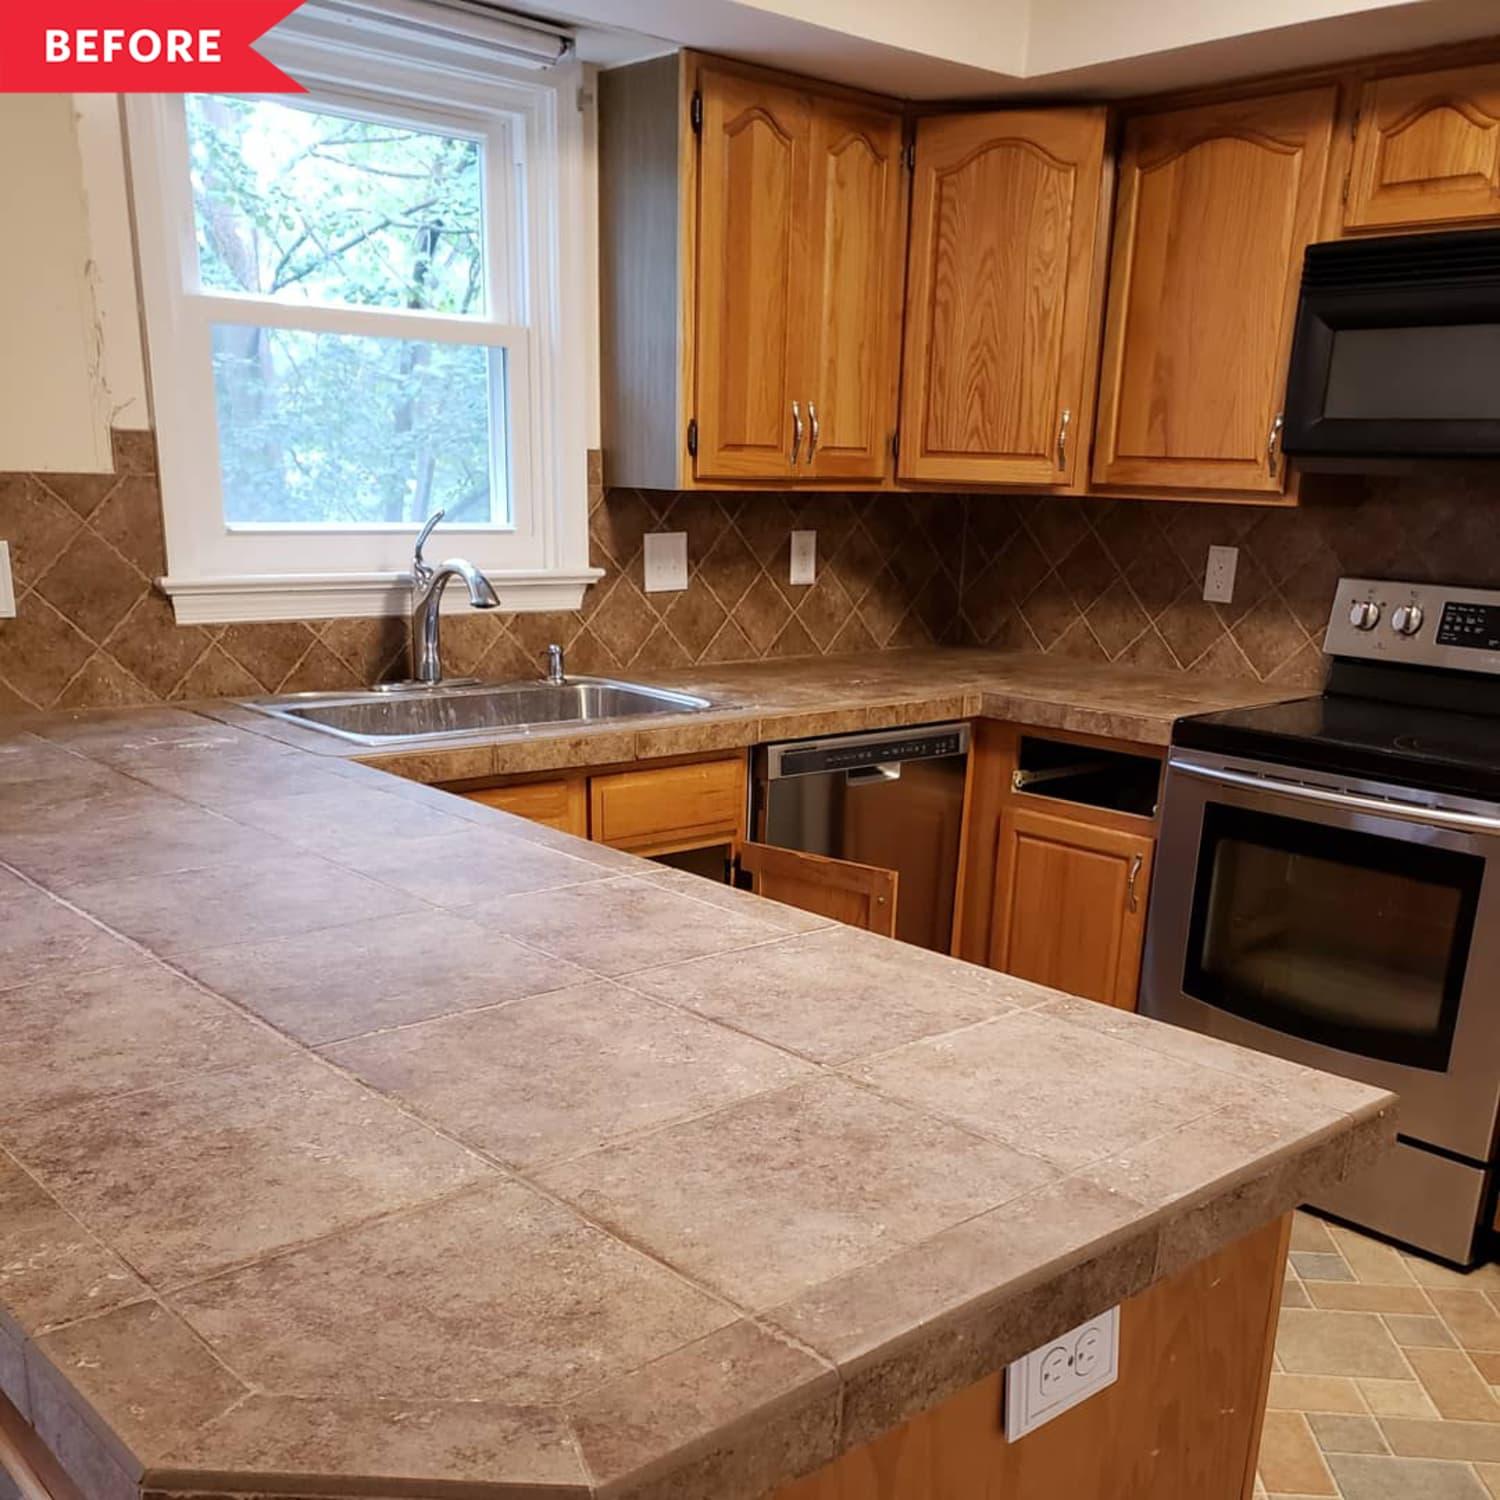 Before and After: This Kitchen Stayed the Same Size, But Looks Twice as Big